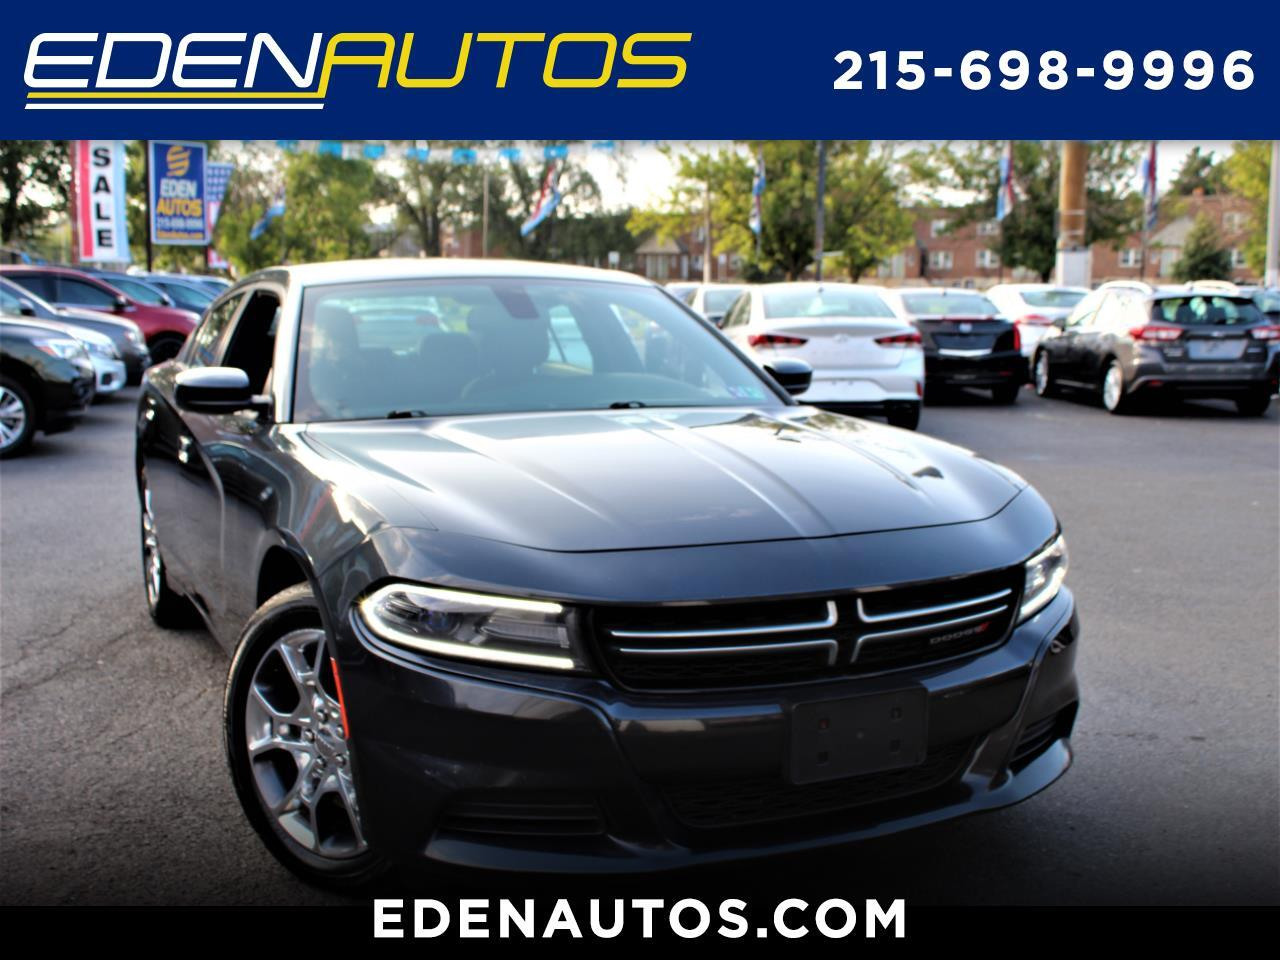 Dodge Charger 4dr Sdn SE AWD 2016